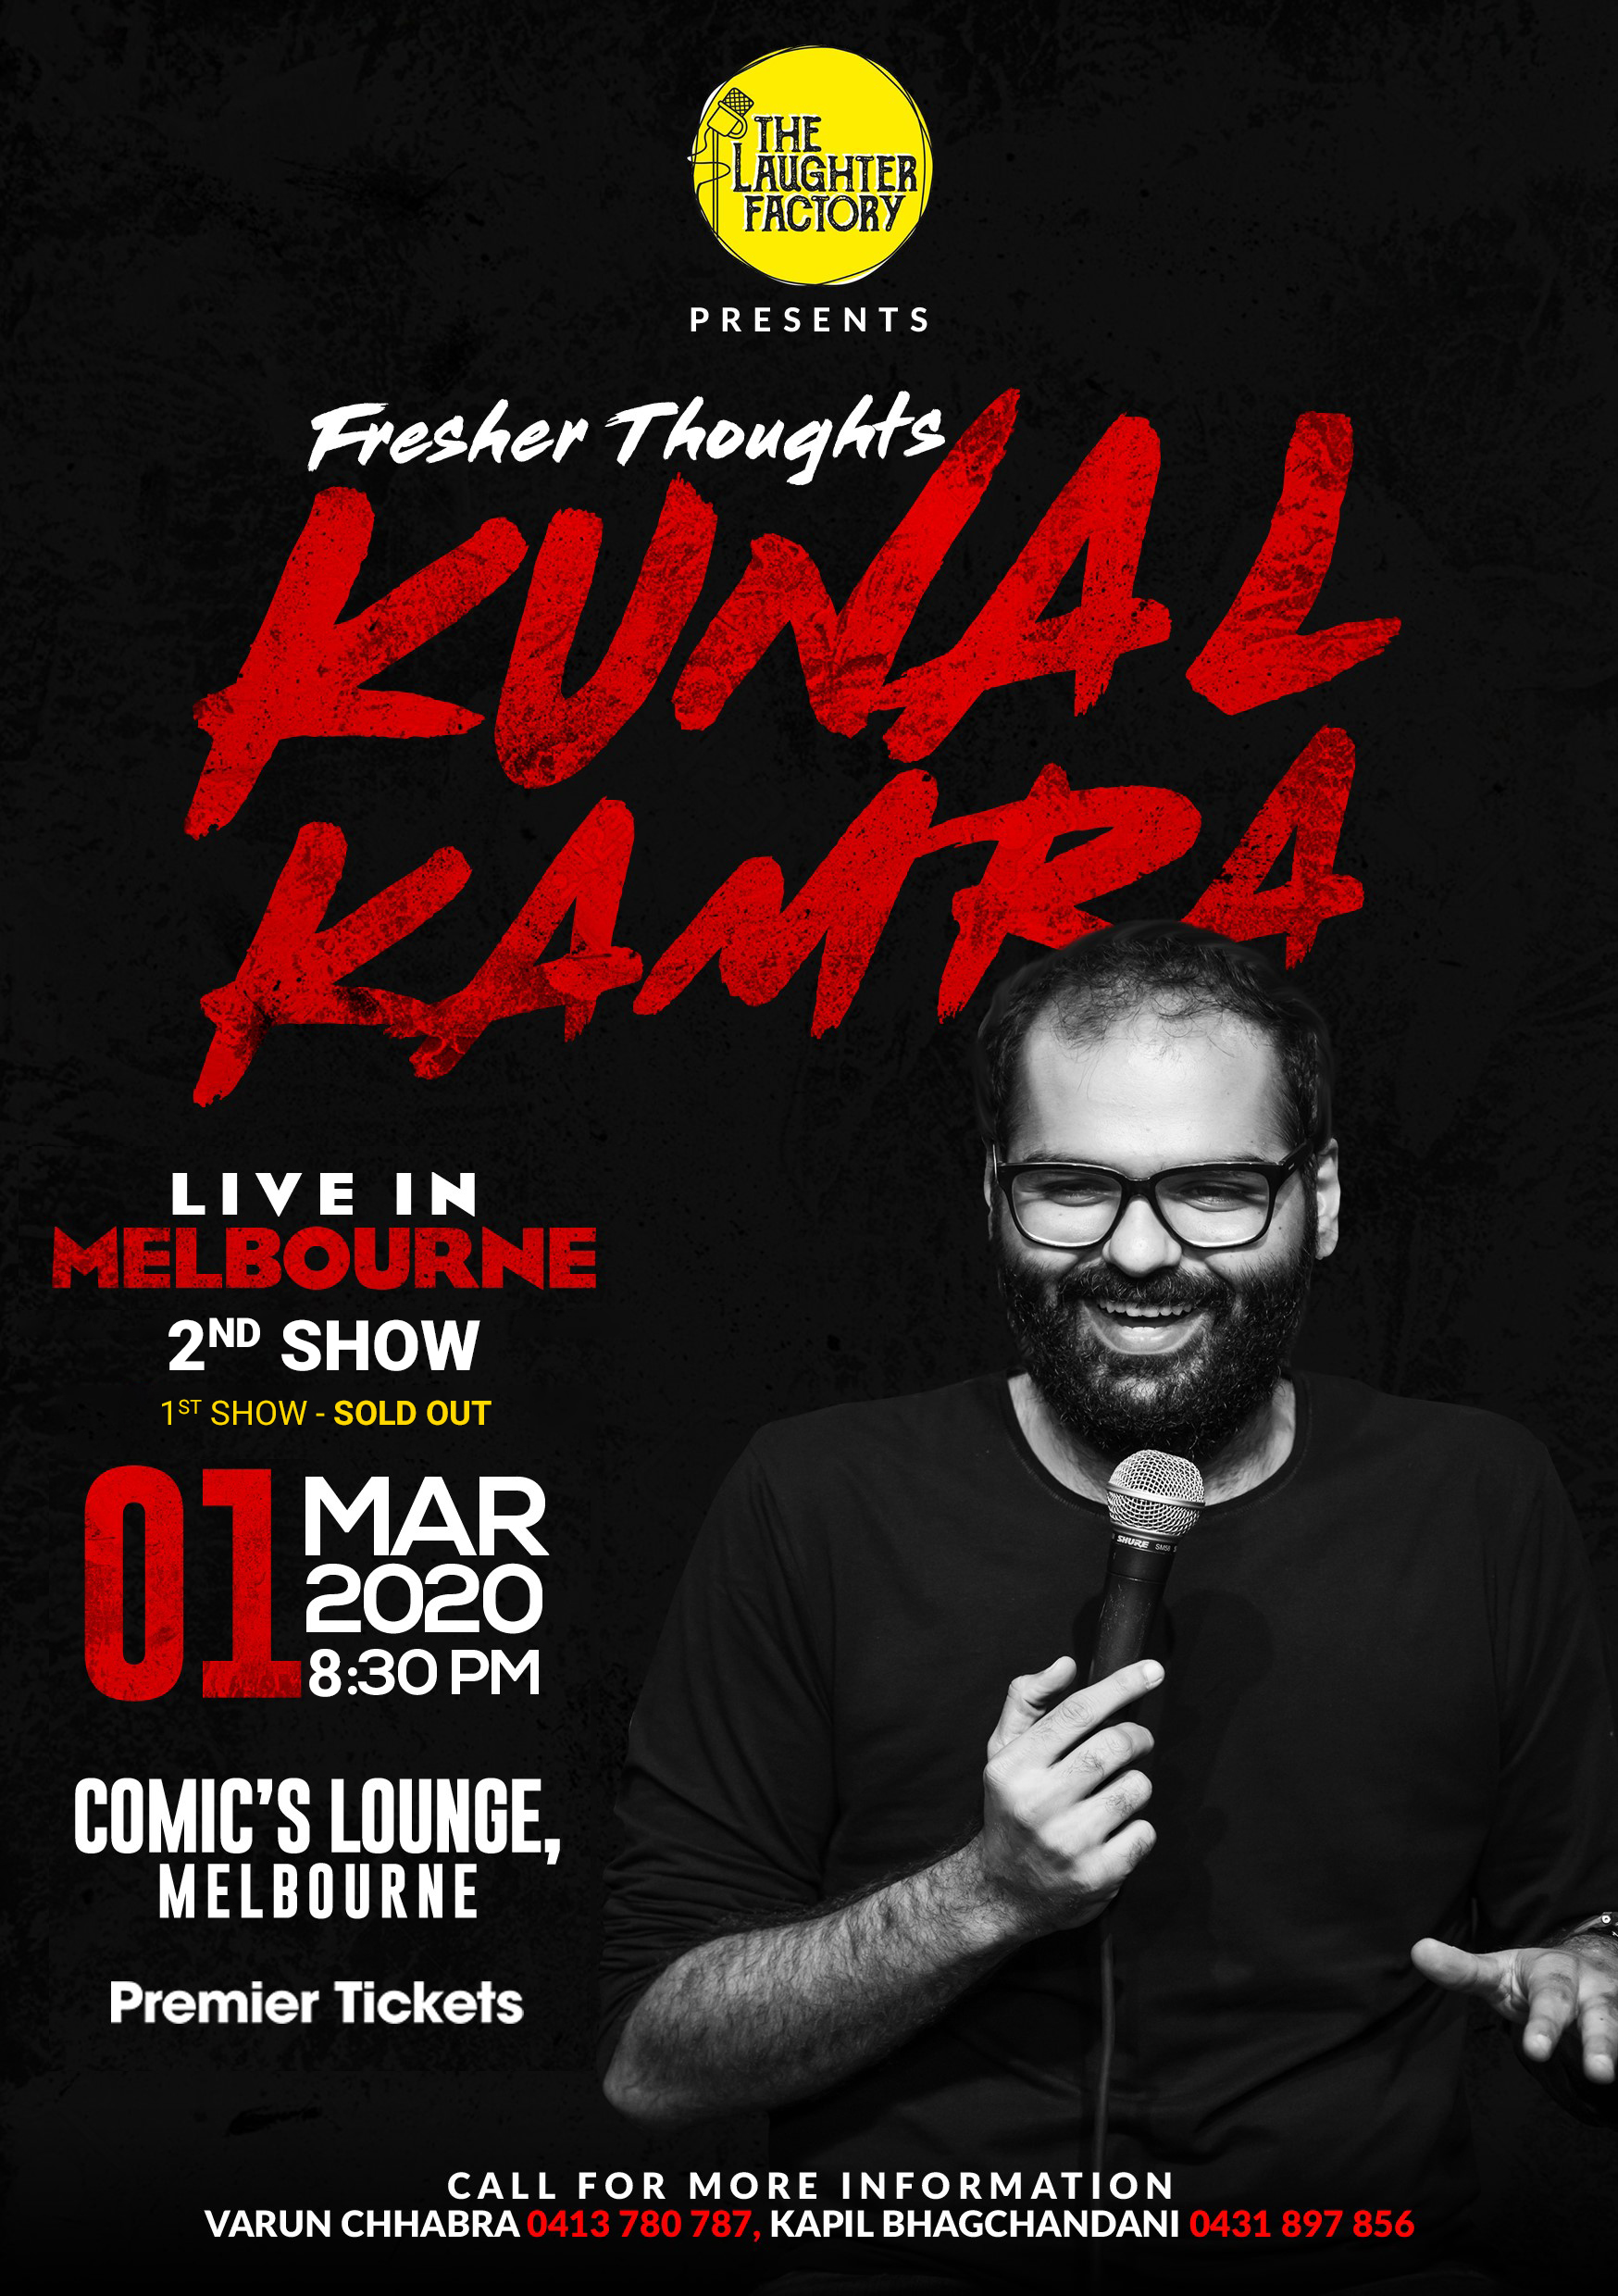 Fresher Thoughts by Kunal Kamra in Melbourne 2nd Show